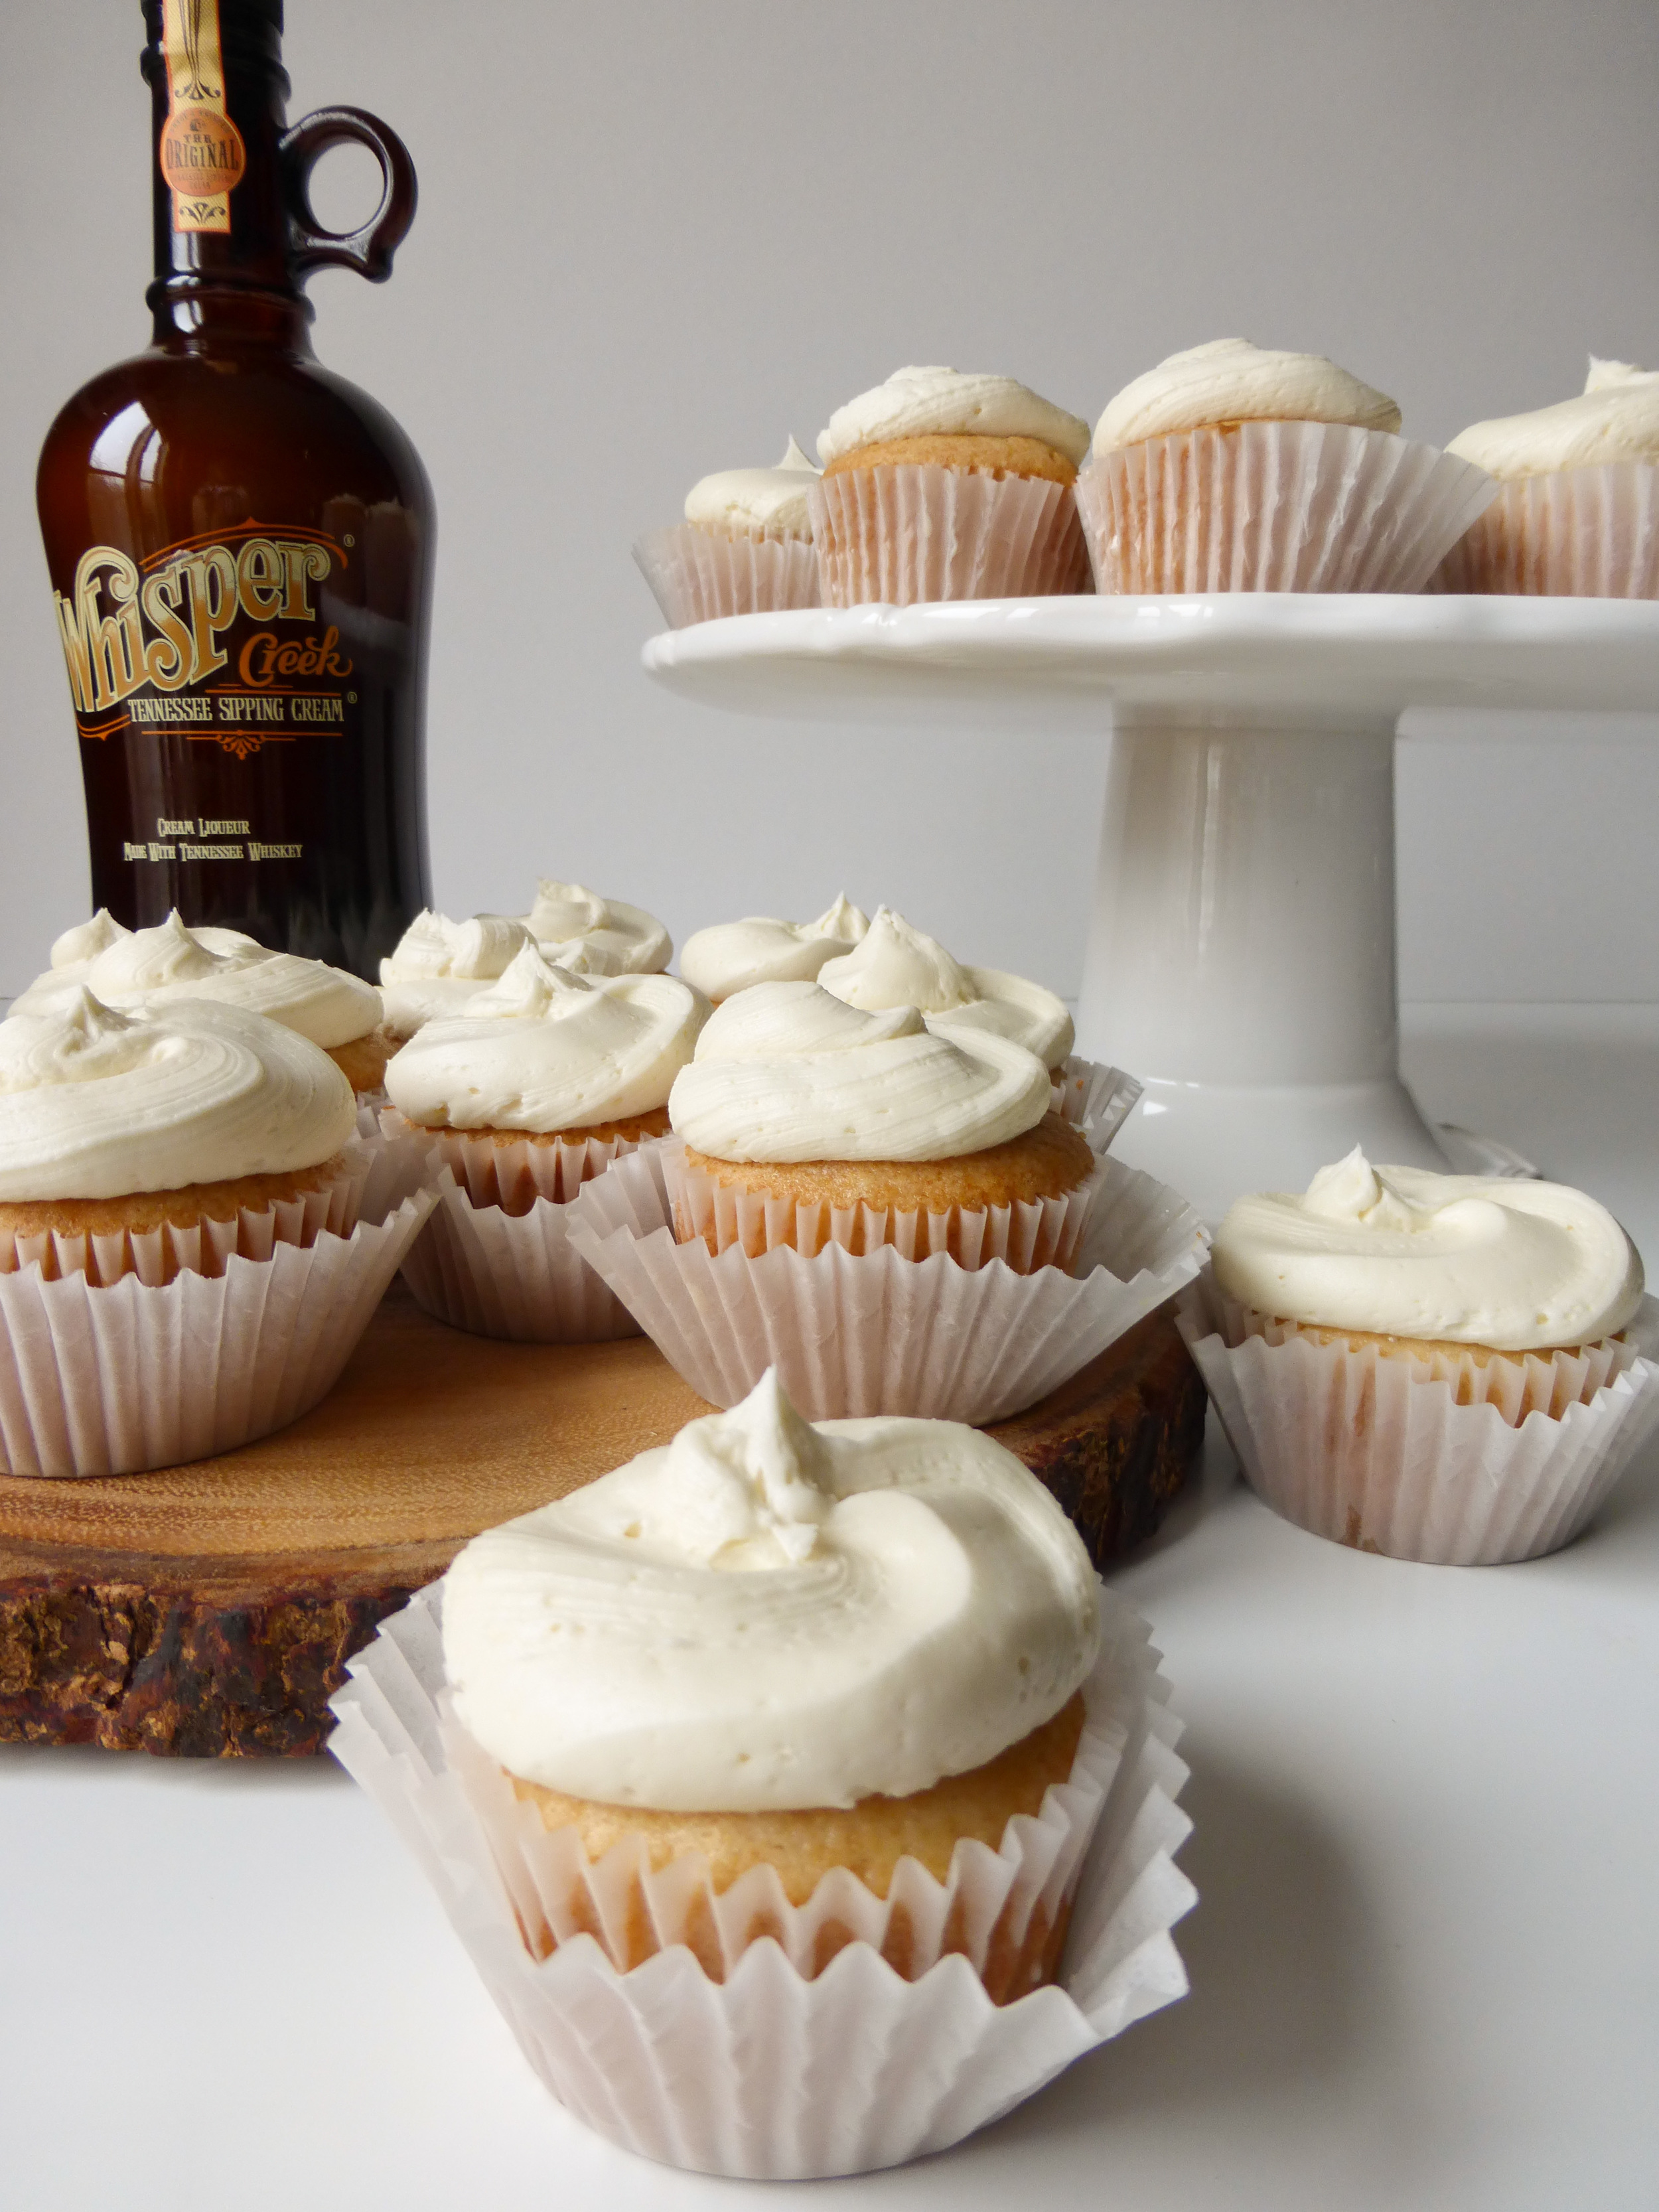 Super Simple recipe for boozy cupcakes made with Whisper Creek Tennessee Sipping Cream